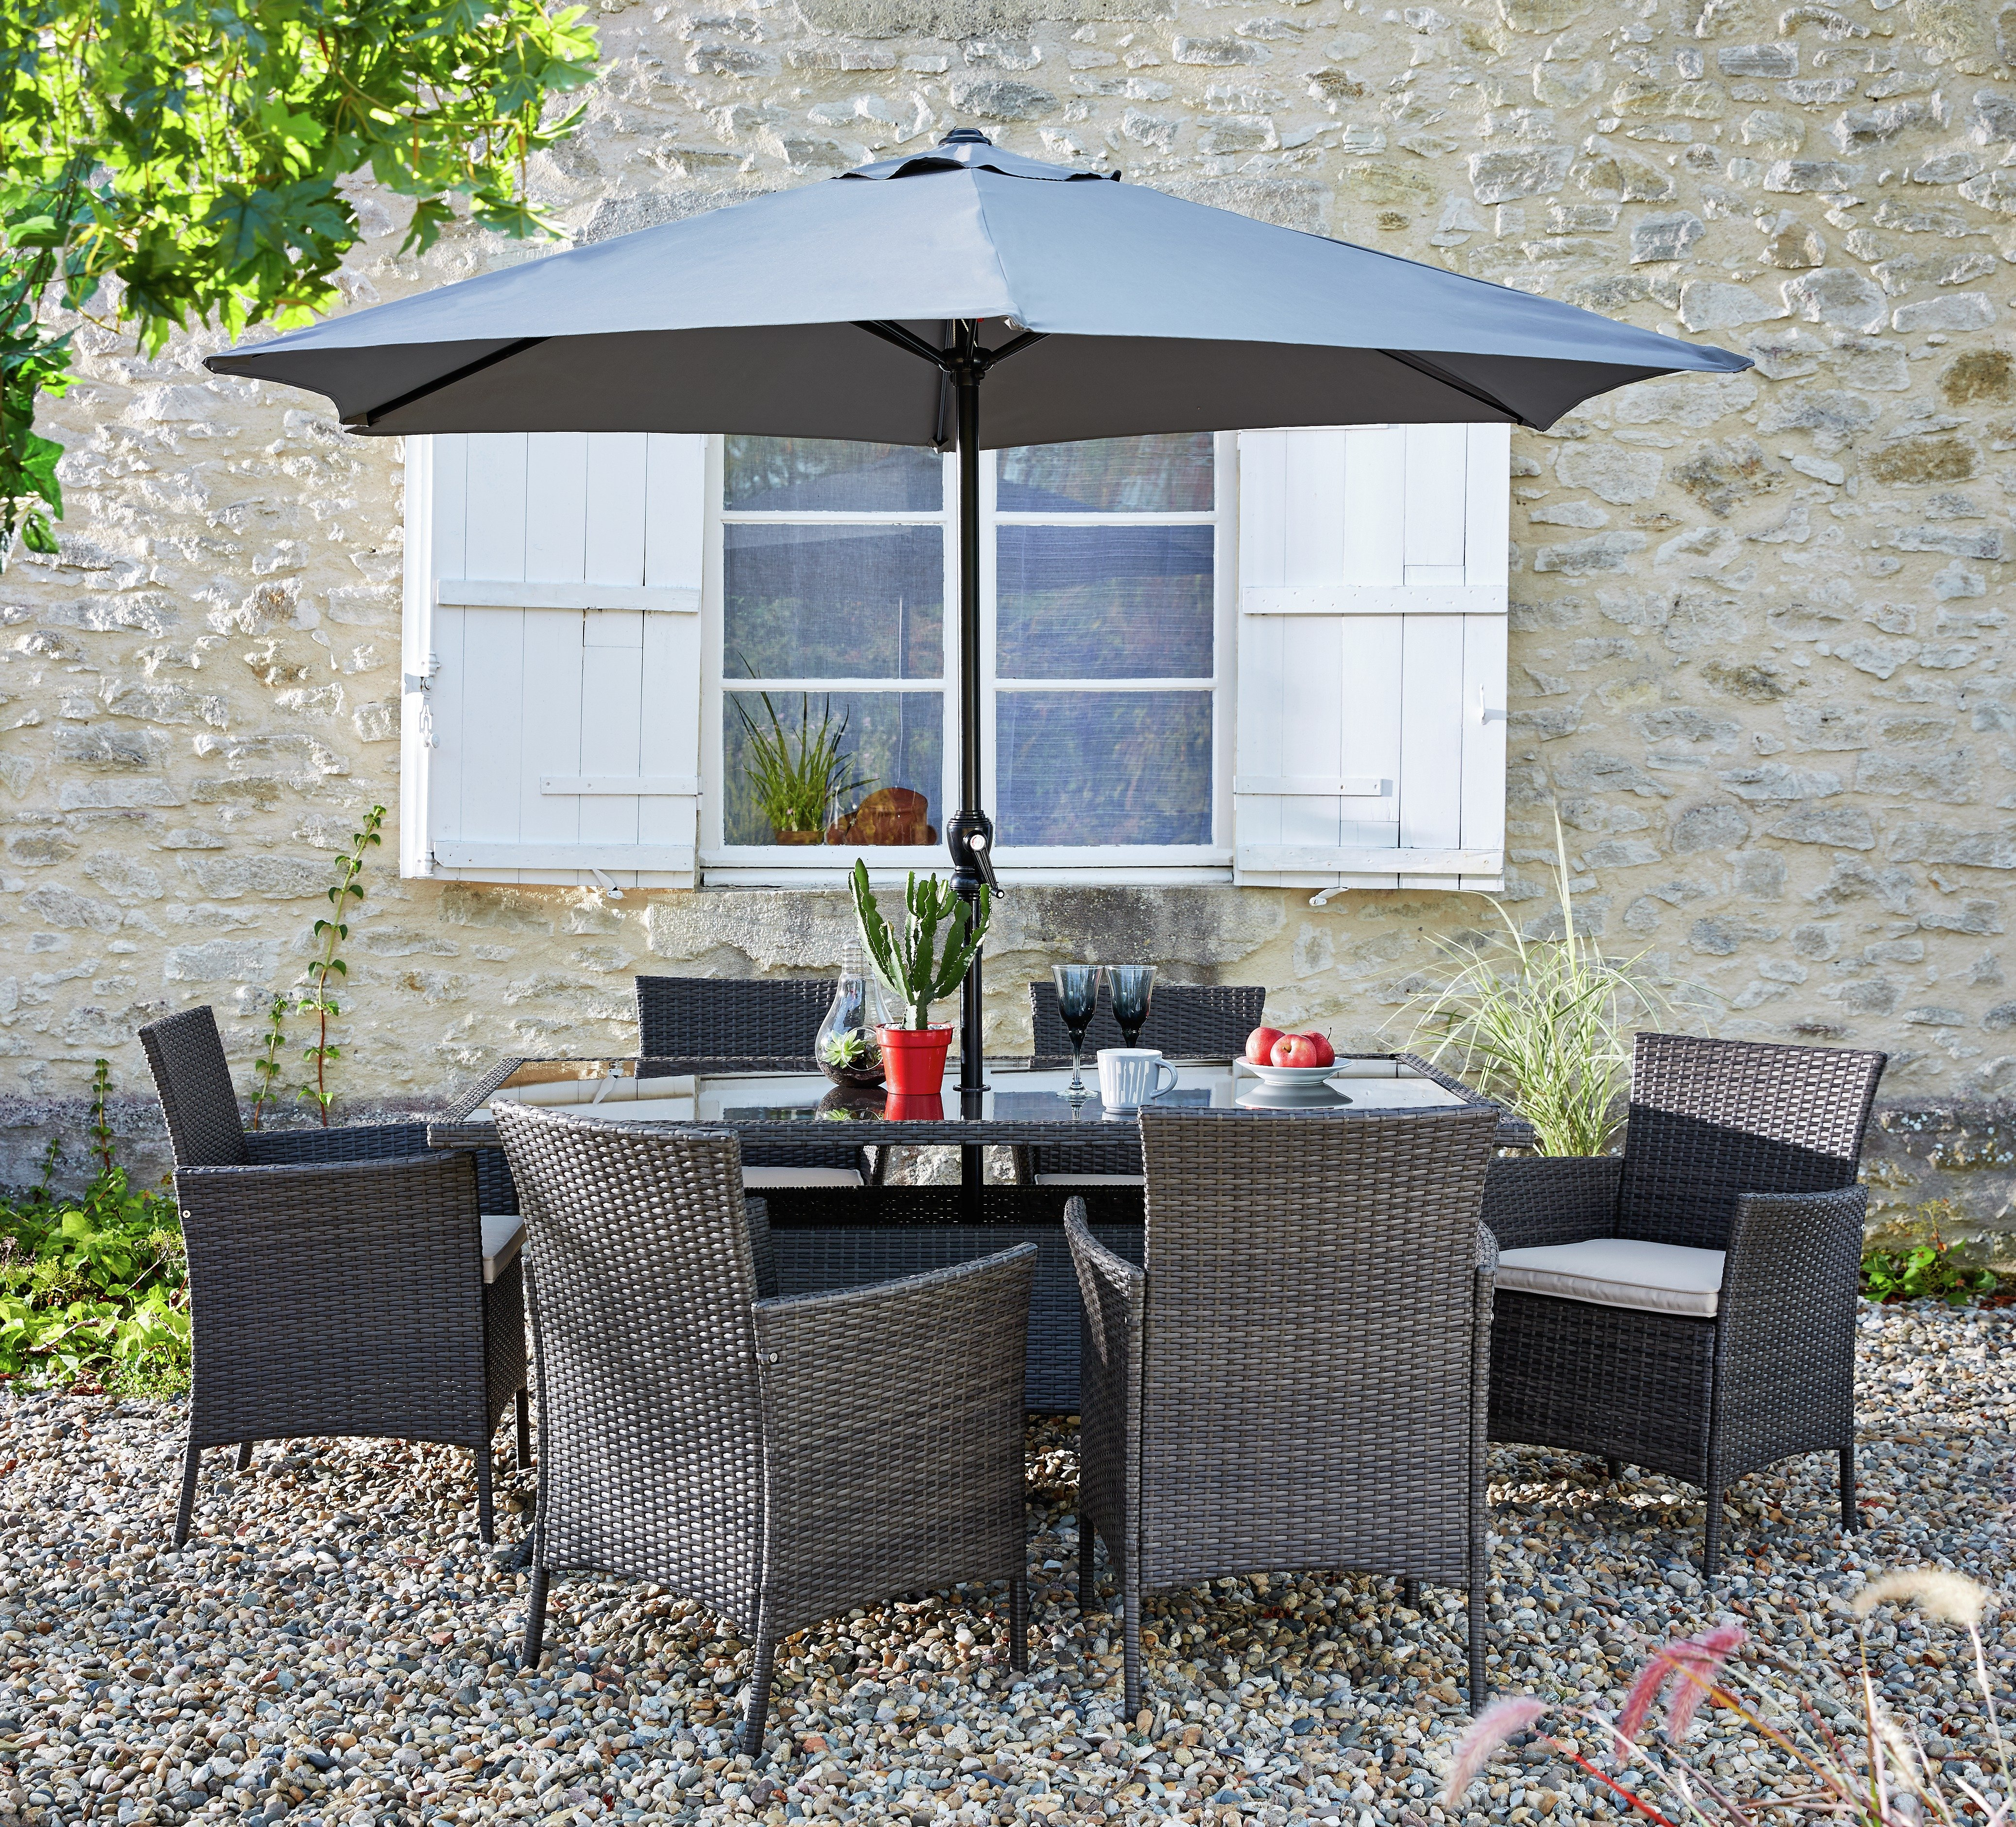 Rattan Garden Furniture 6 Seater buy collection fiji 6 seater rattan patio set - grey at argos.co